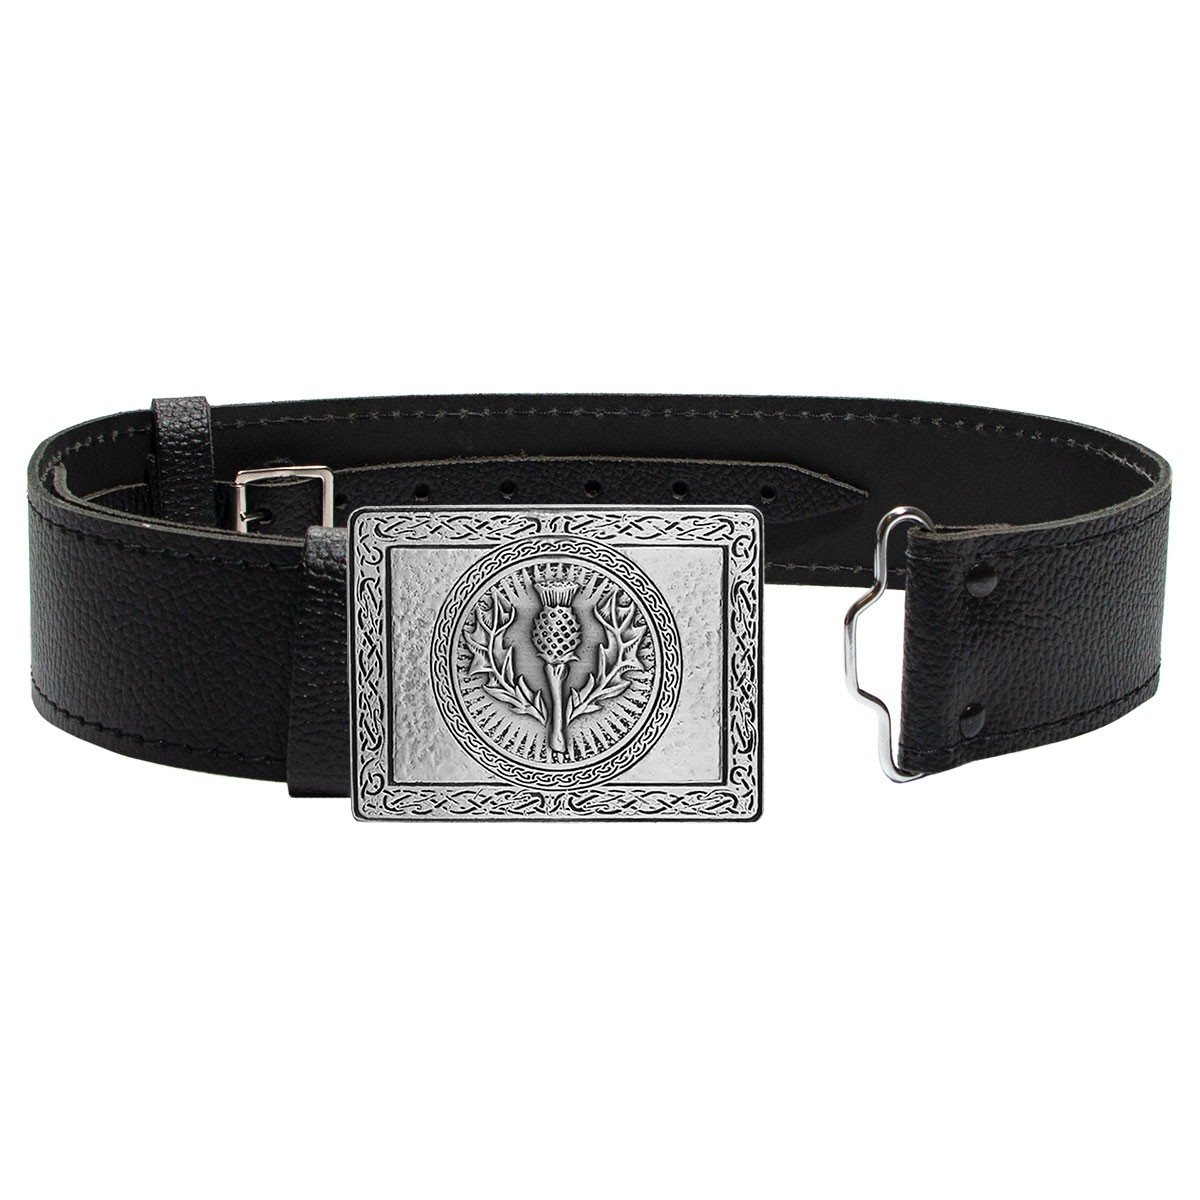 Thistle in Pewter Buckle and Leather Belt